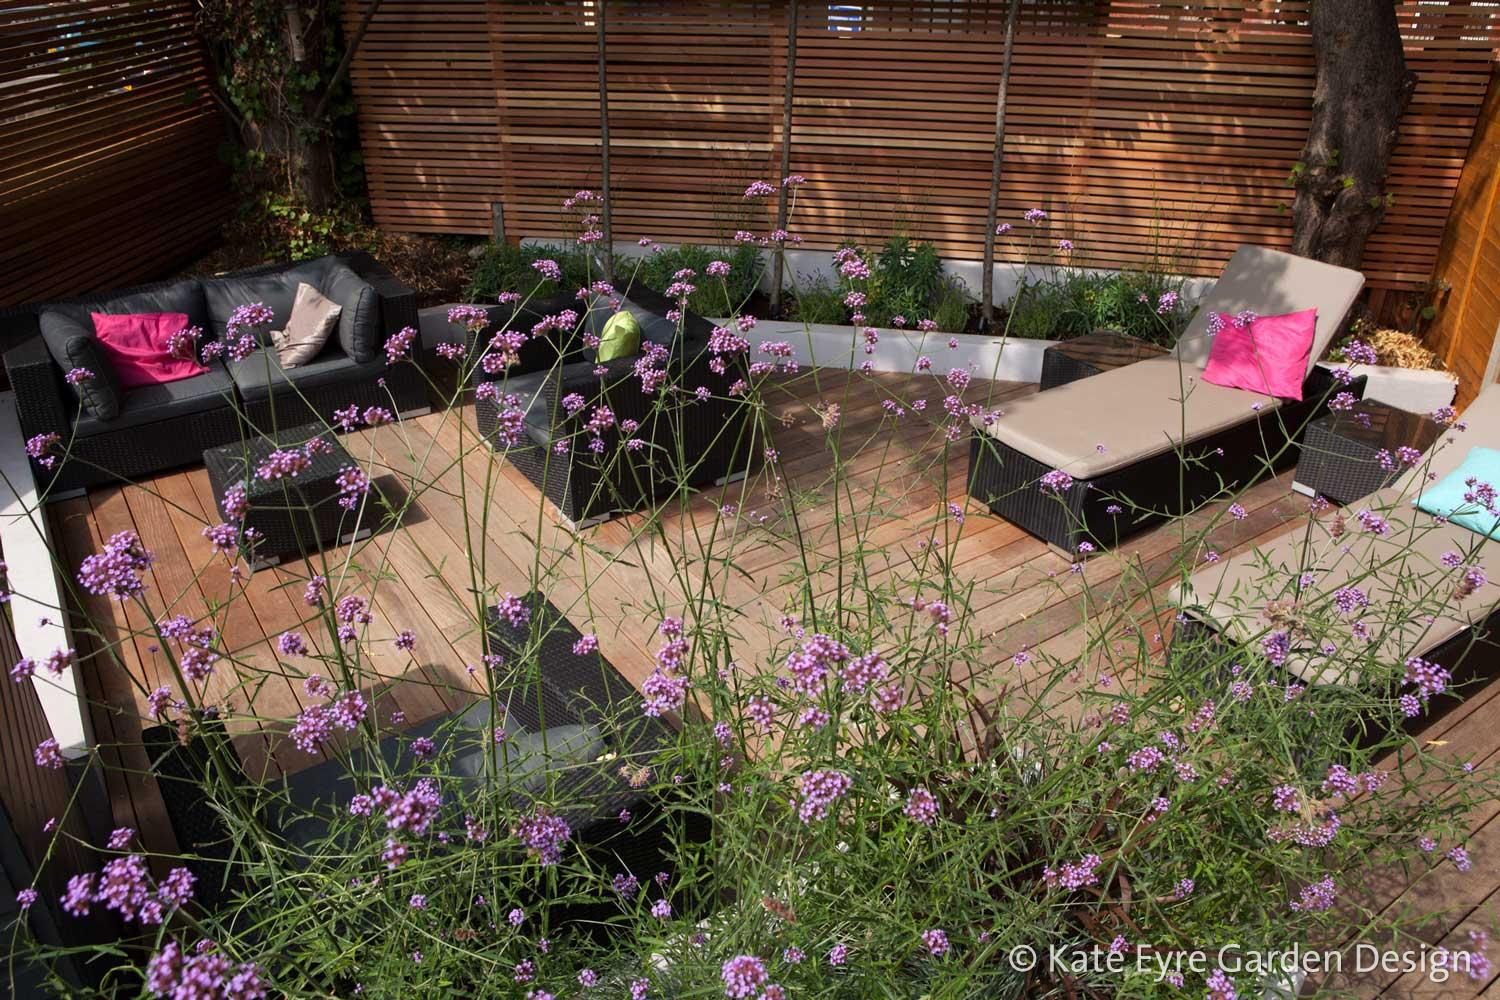 Medium back garden design in Drewstead Road, Streatham, 1